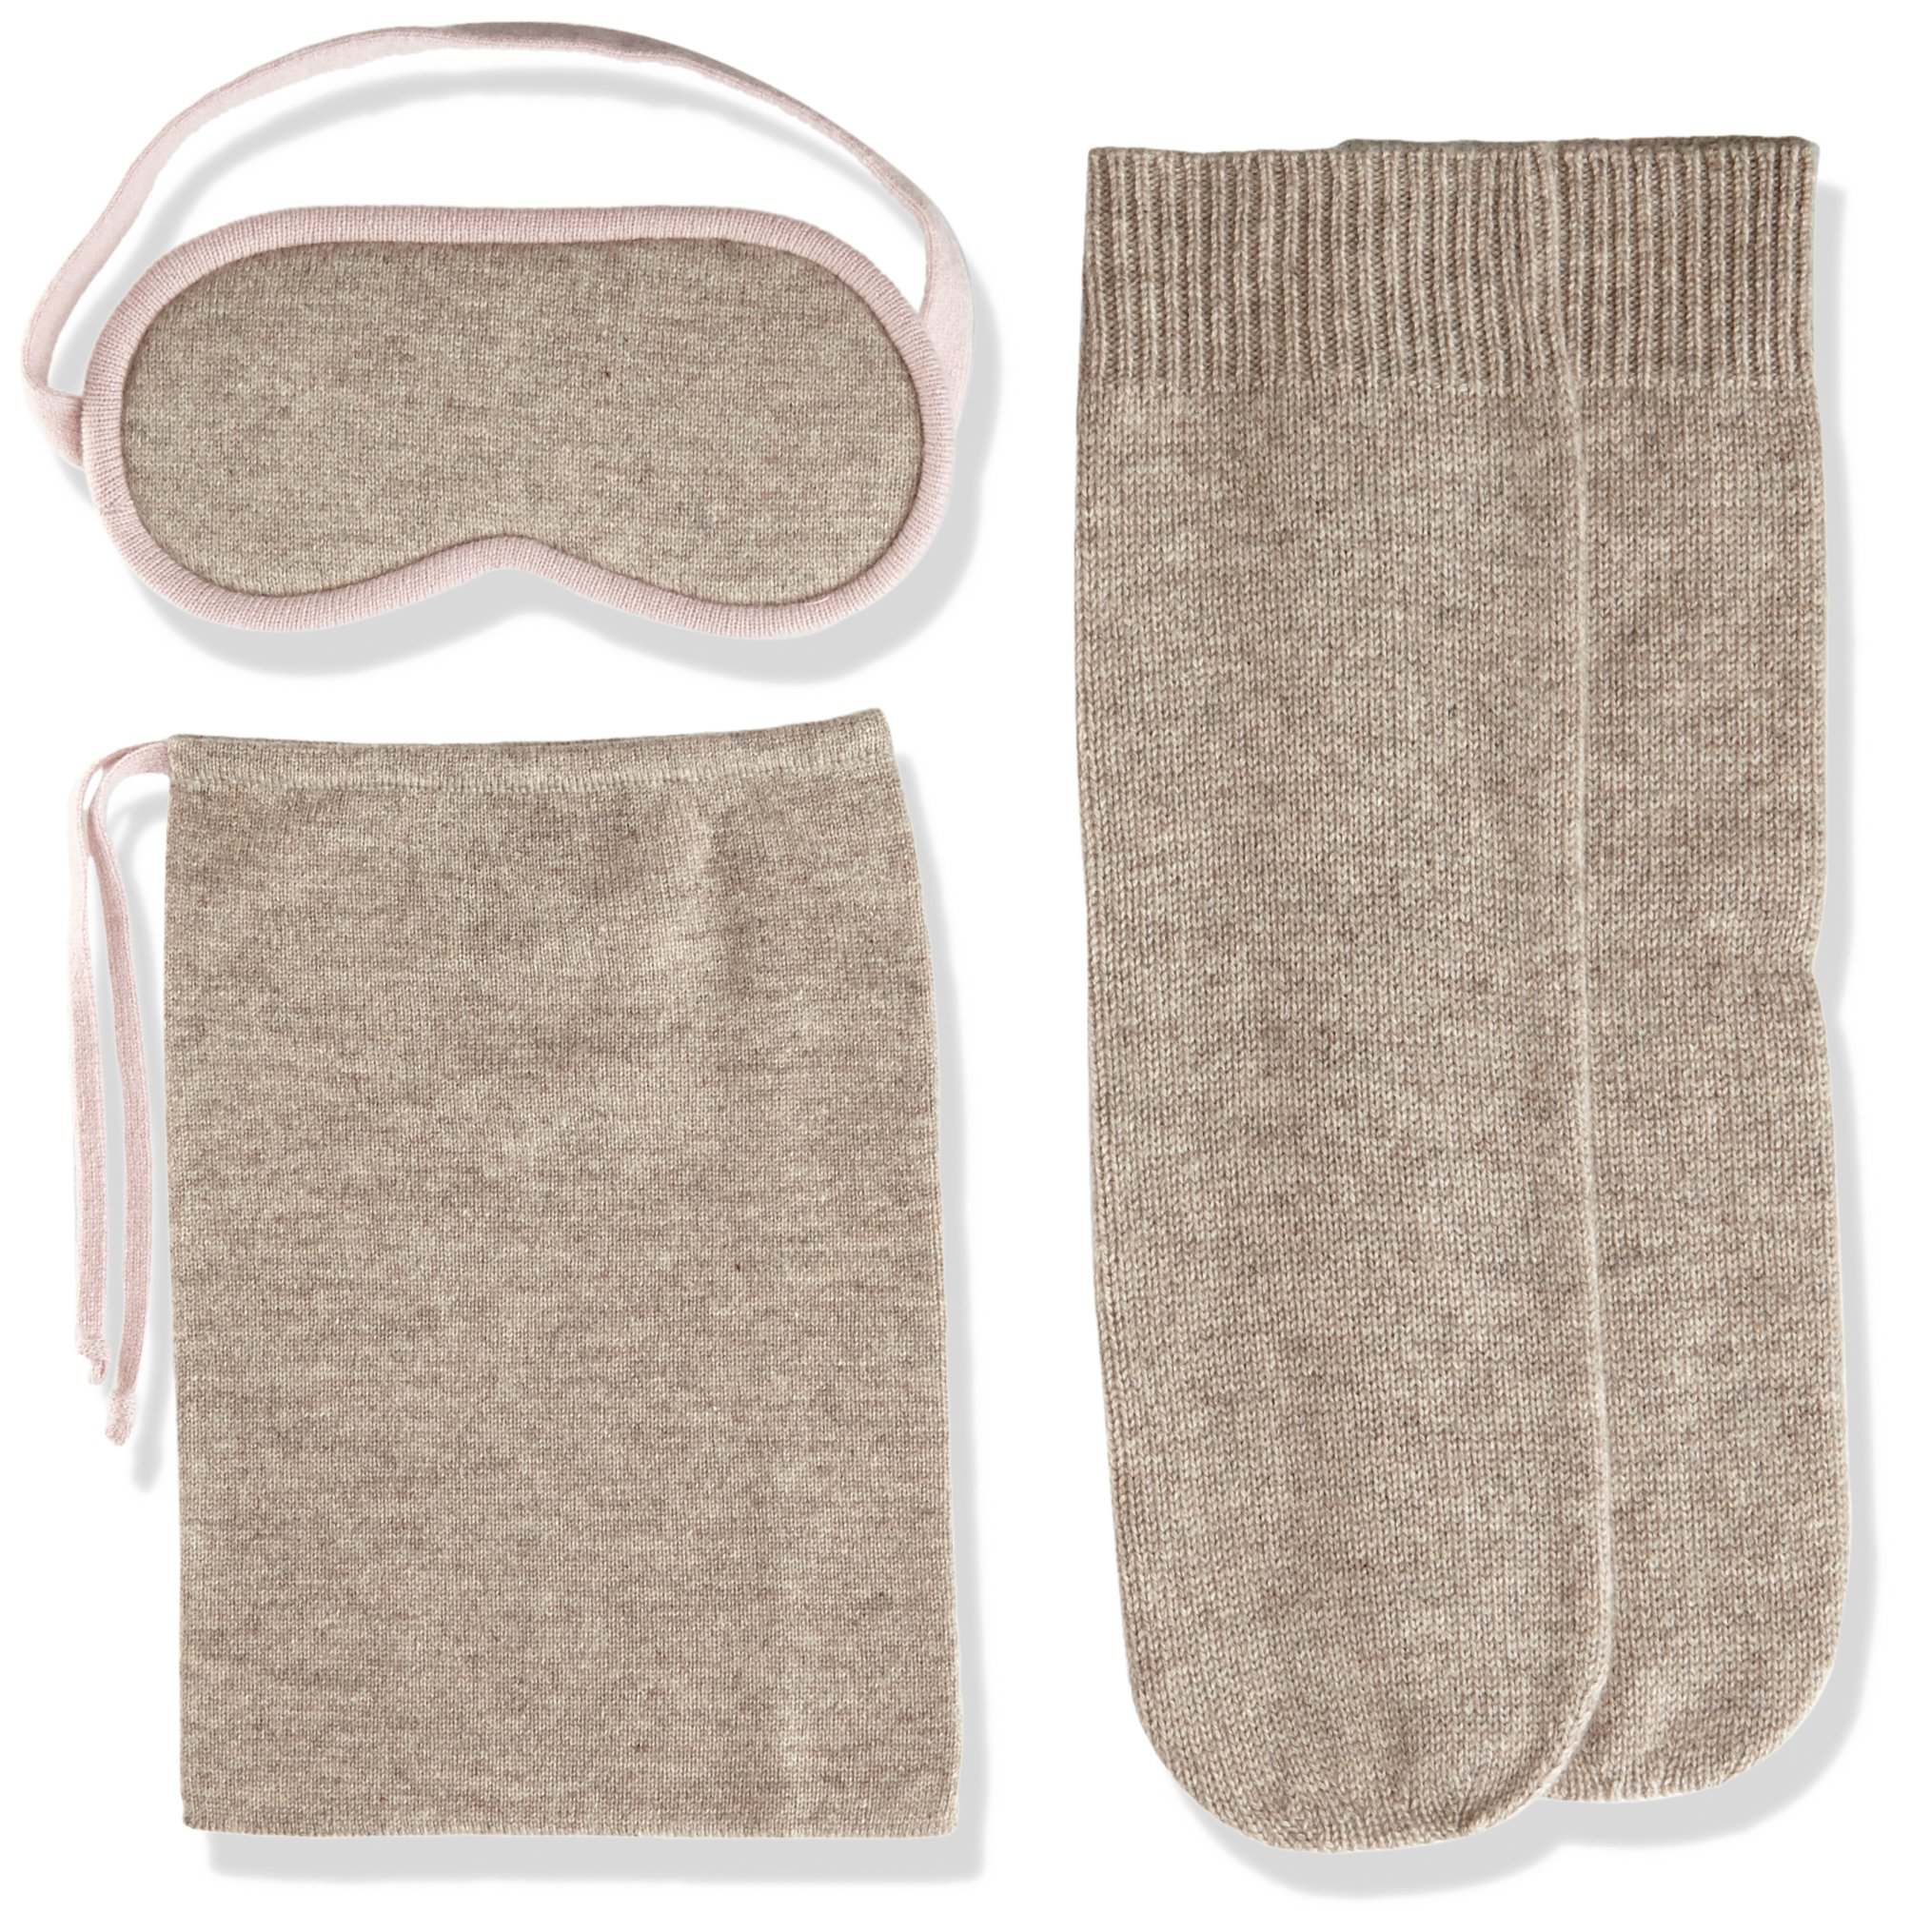 Sofia Cashmere Women's Cashmere Travel Set-Eyemask and Socks, Taos ZY32199 + Rose Dust ZY42288, One